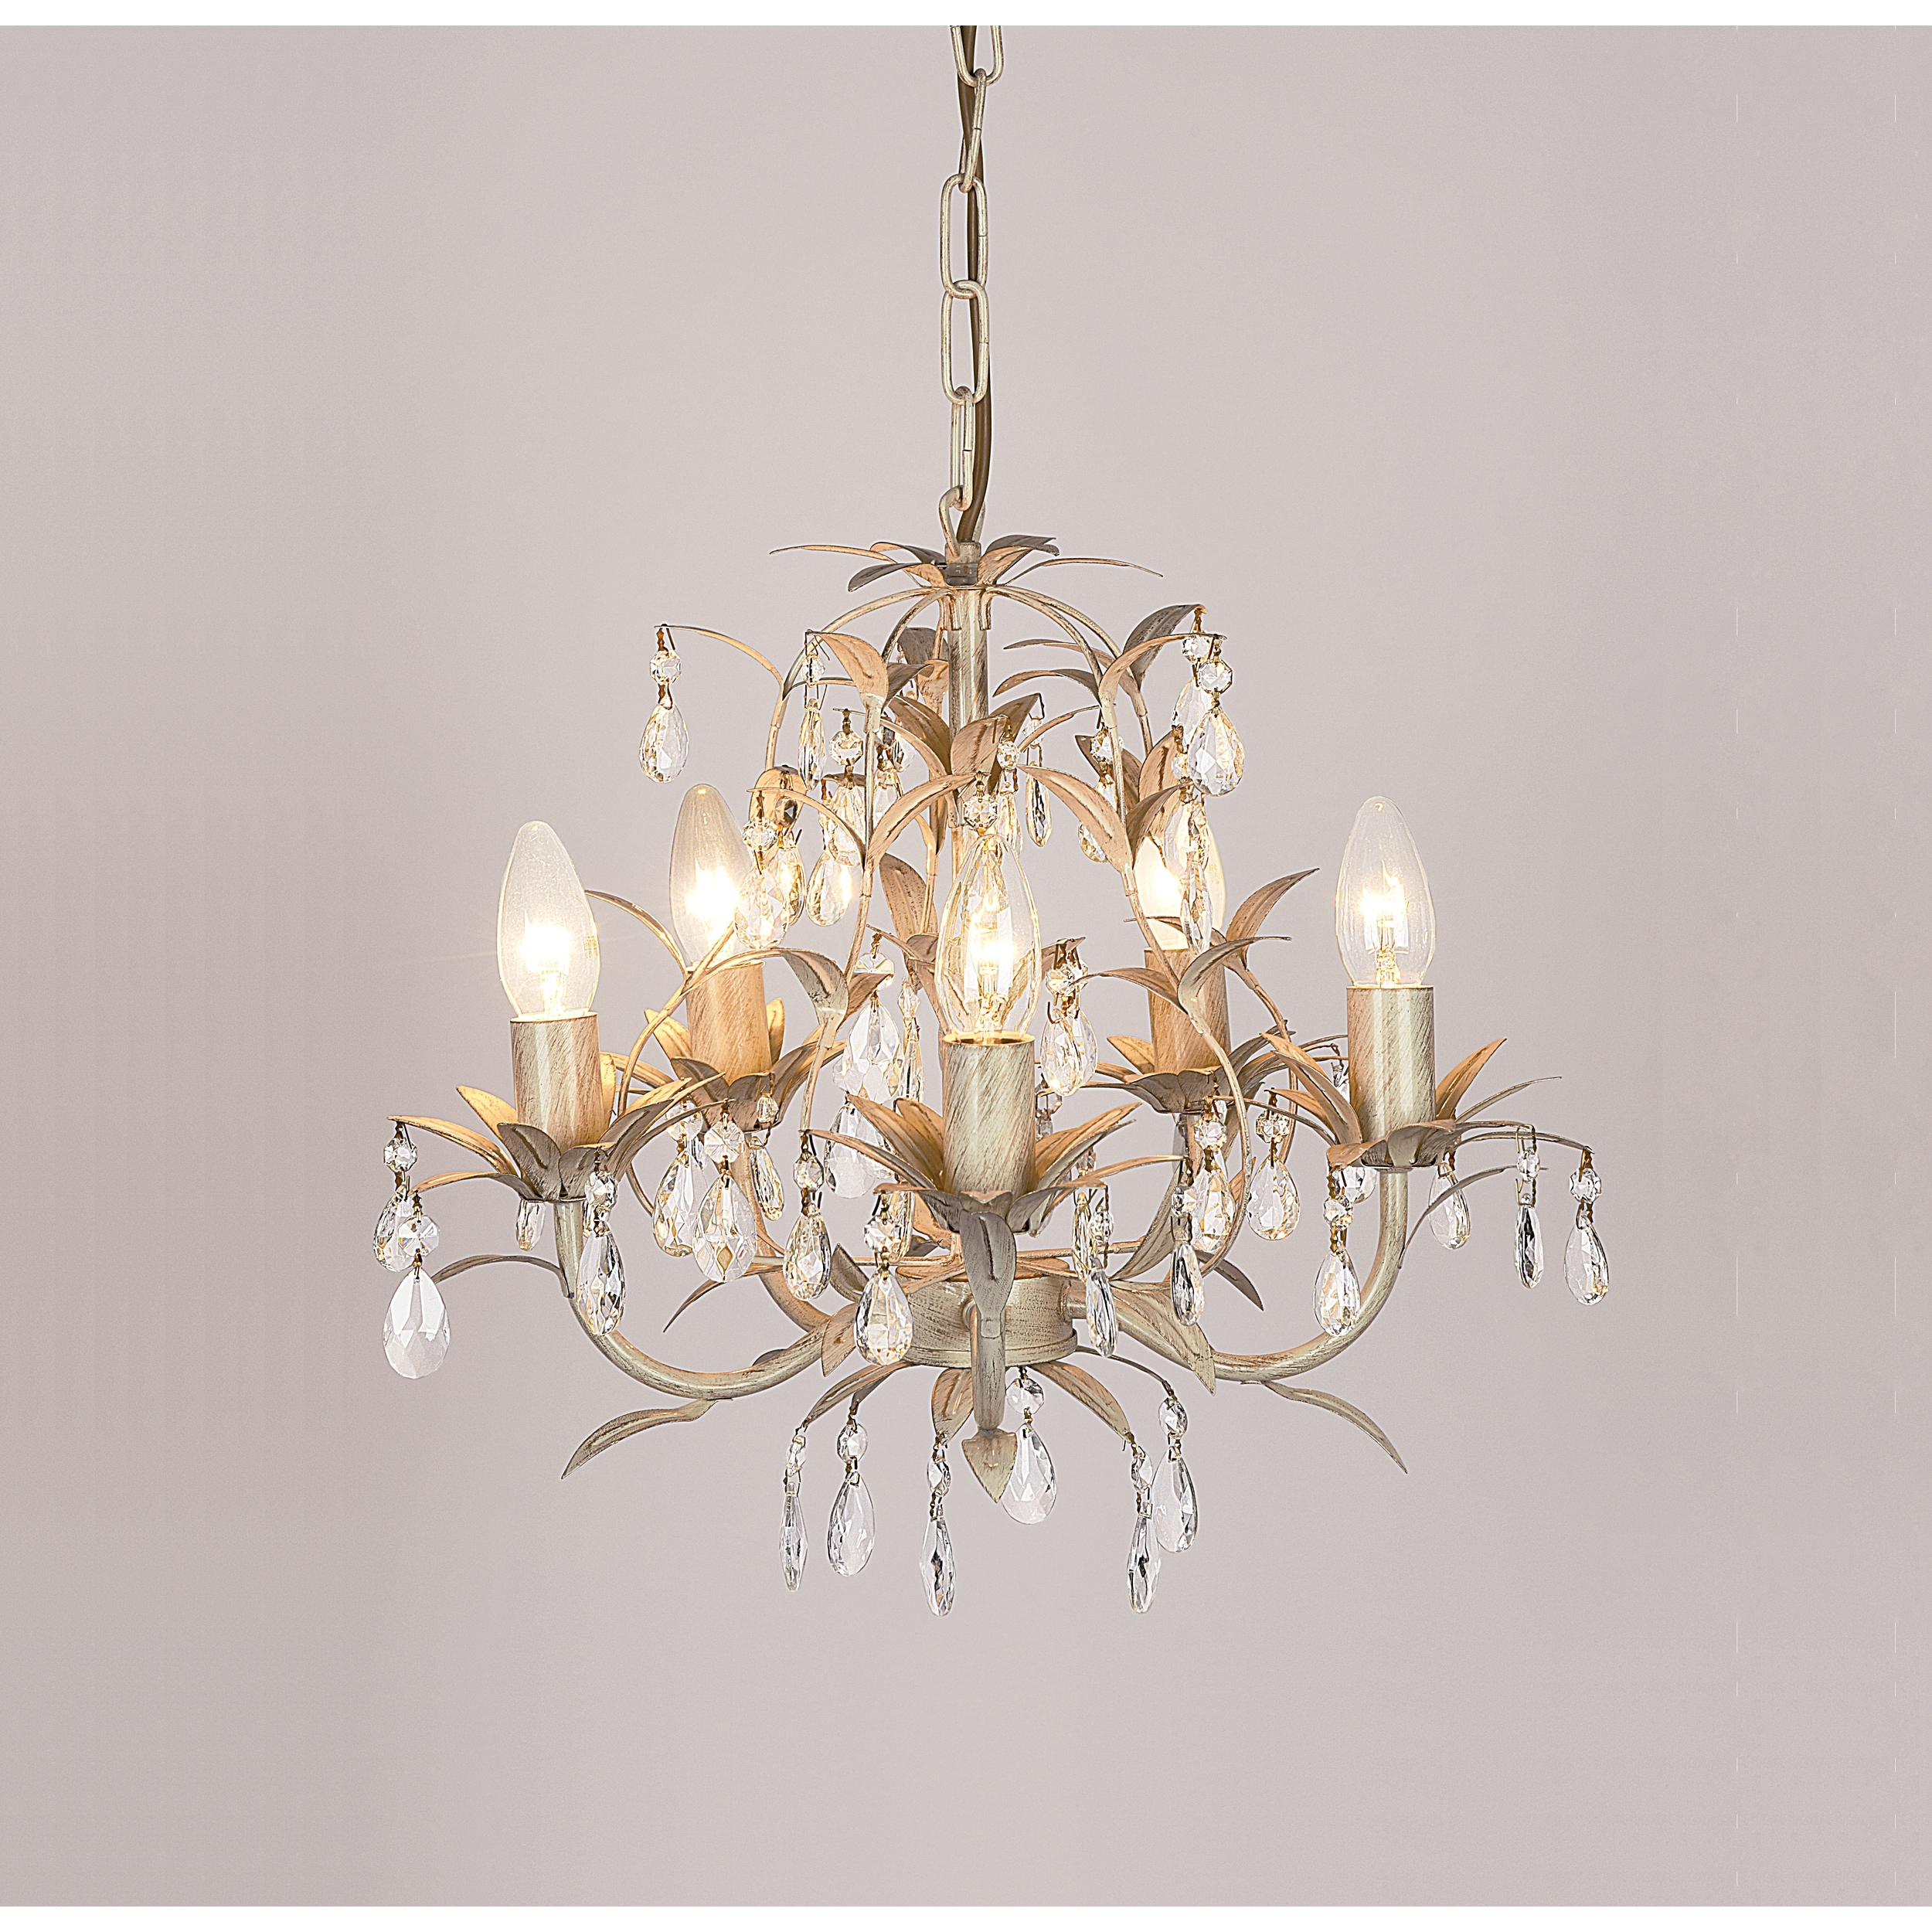 Cream Chandeliers Within Best And Newest Chella Cream 5 Light Chandelier (View 14 of 15)